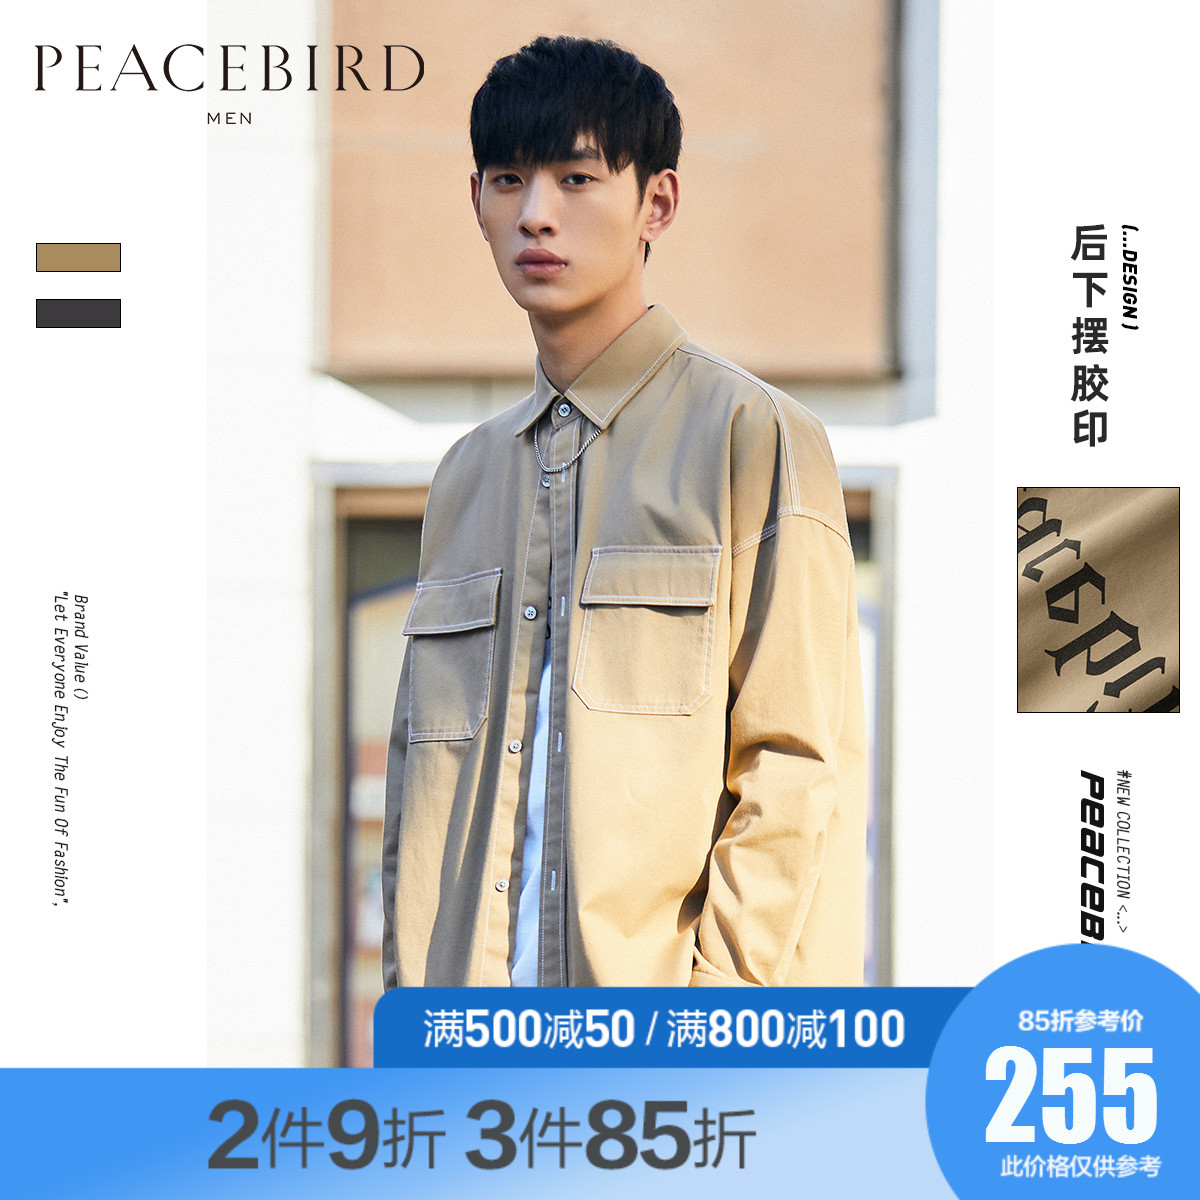 Taiping bird men's tooling shirt bottom offset fashion Lapel coat spring loose casual Long Sleeve Shirt